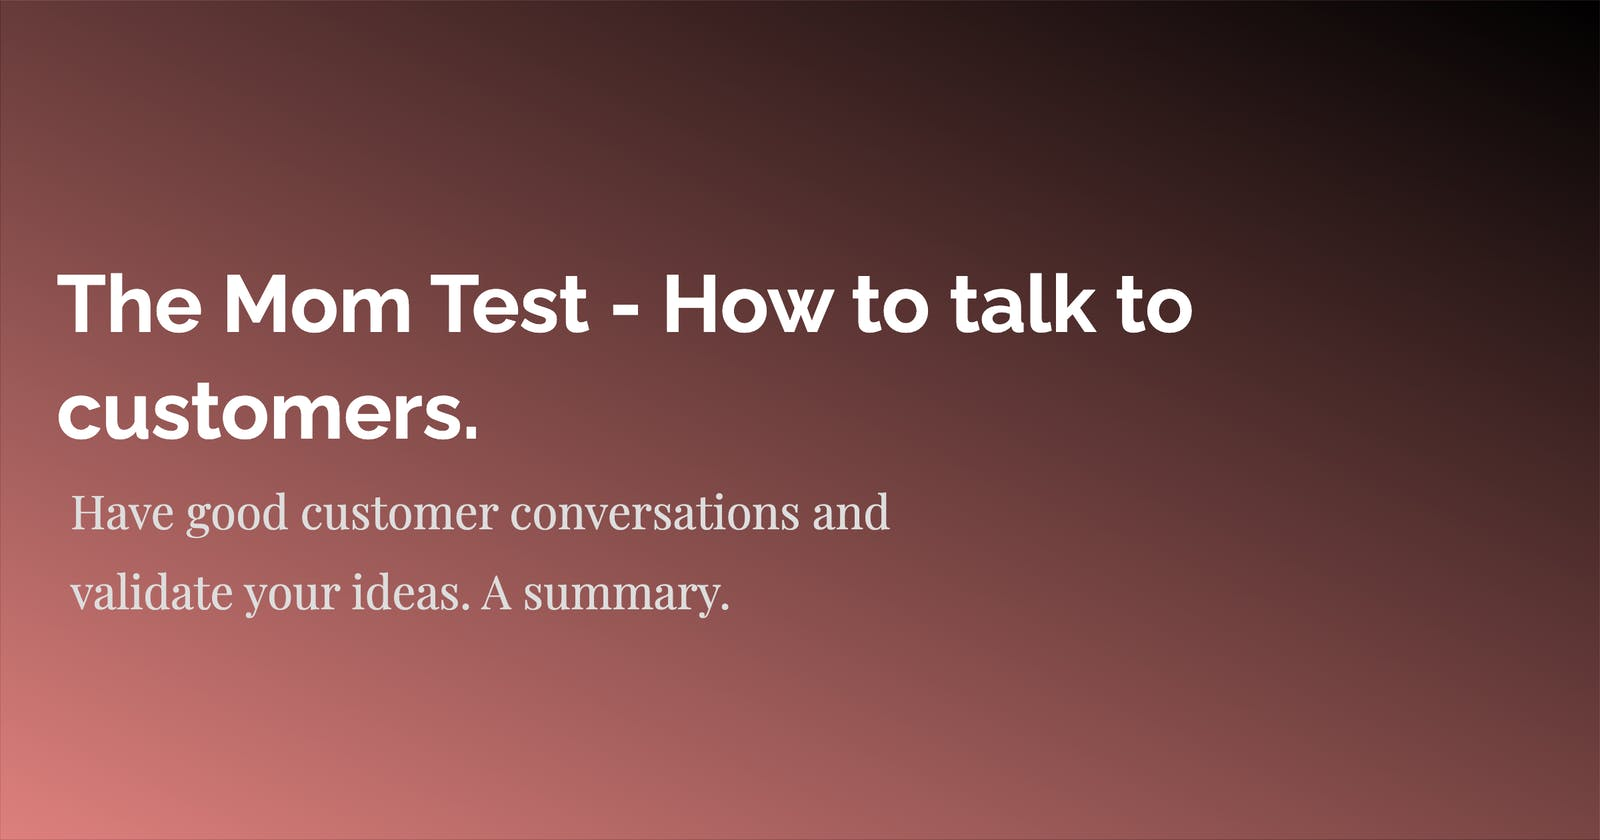 The Mom Test - How to talk to customers. A Summary